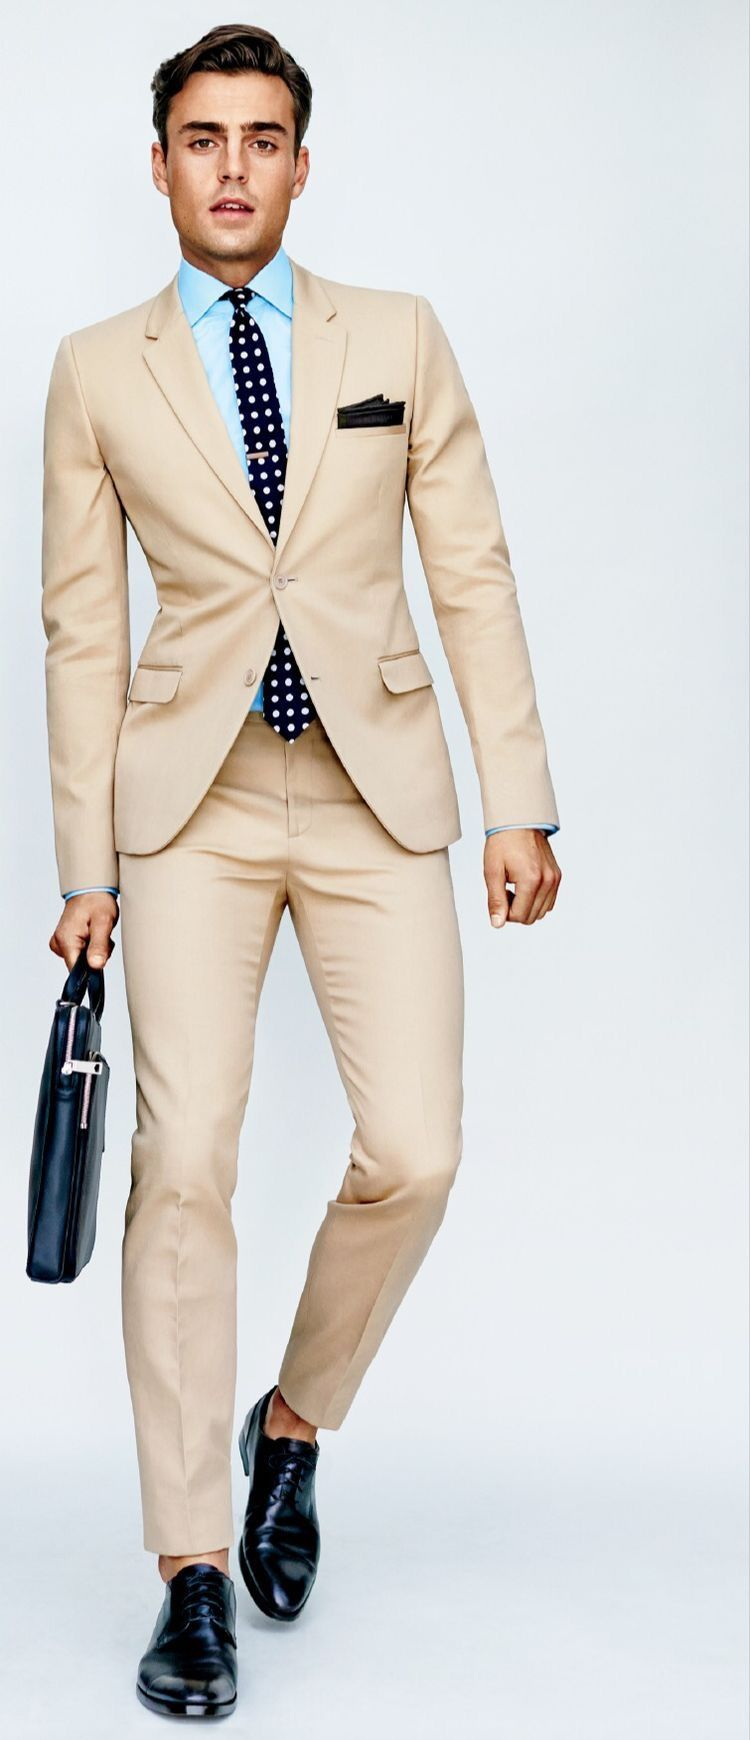 The quintessential summer suit. | FASHION | Pinterest | Dapper ...